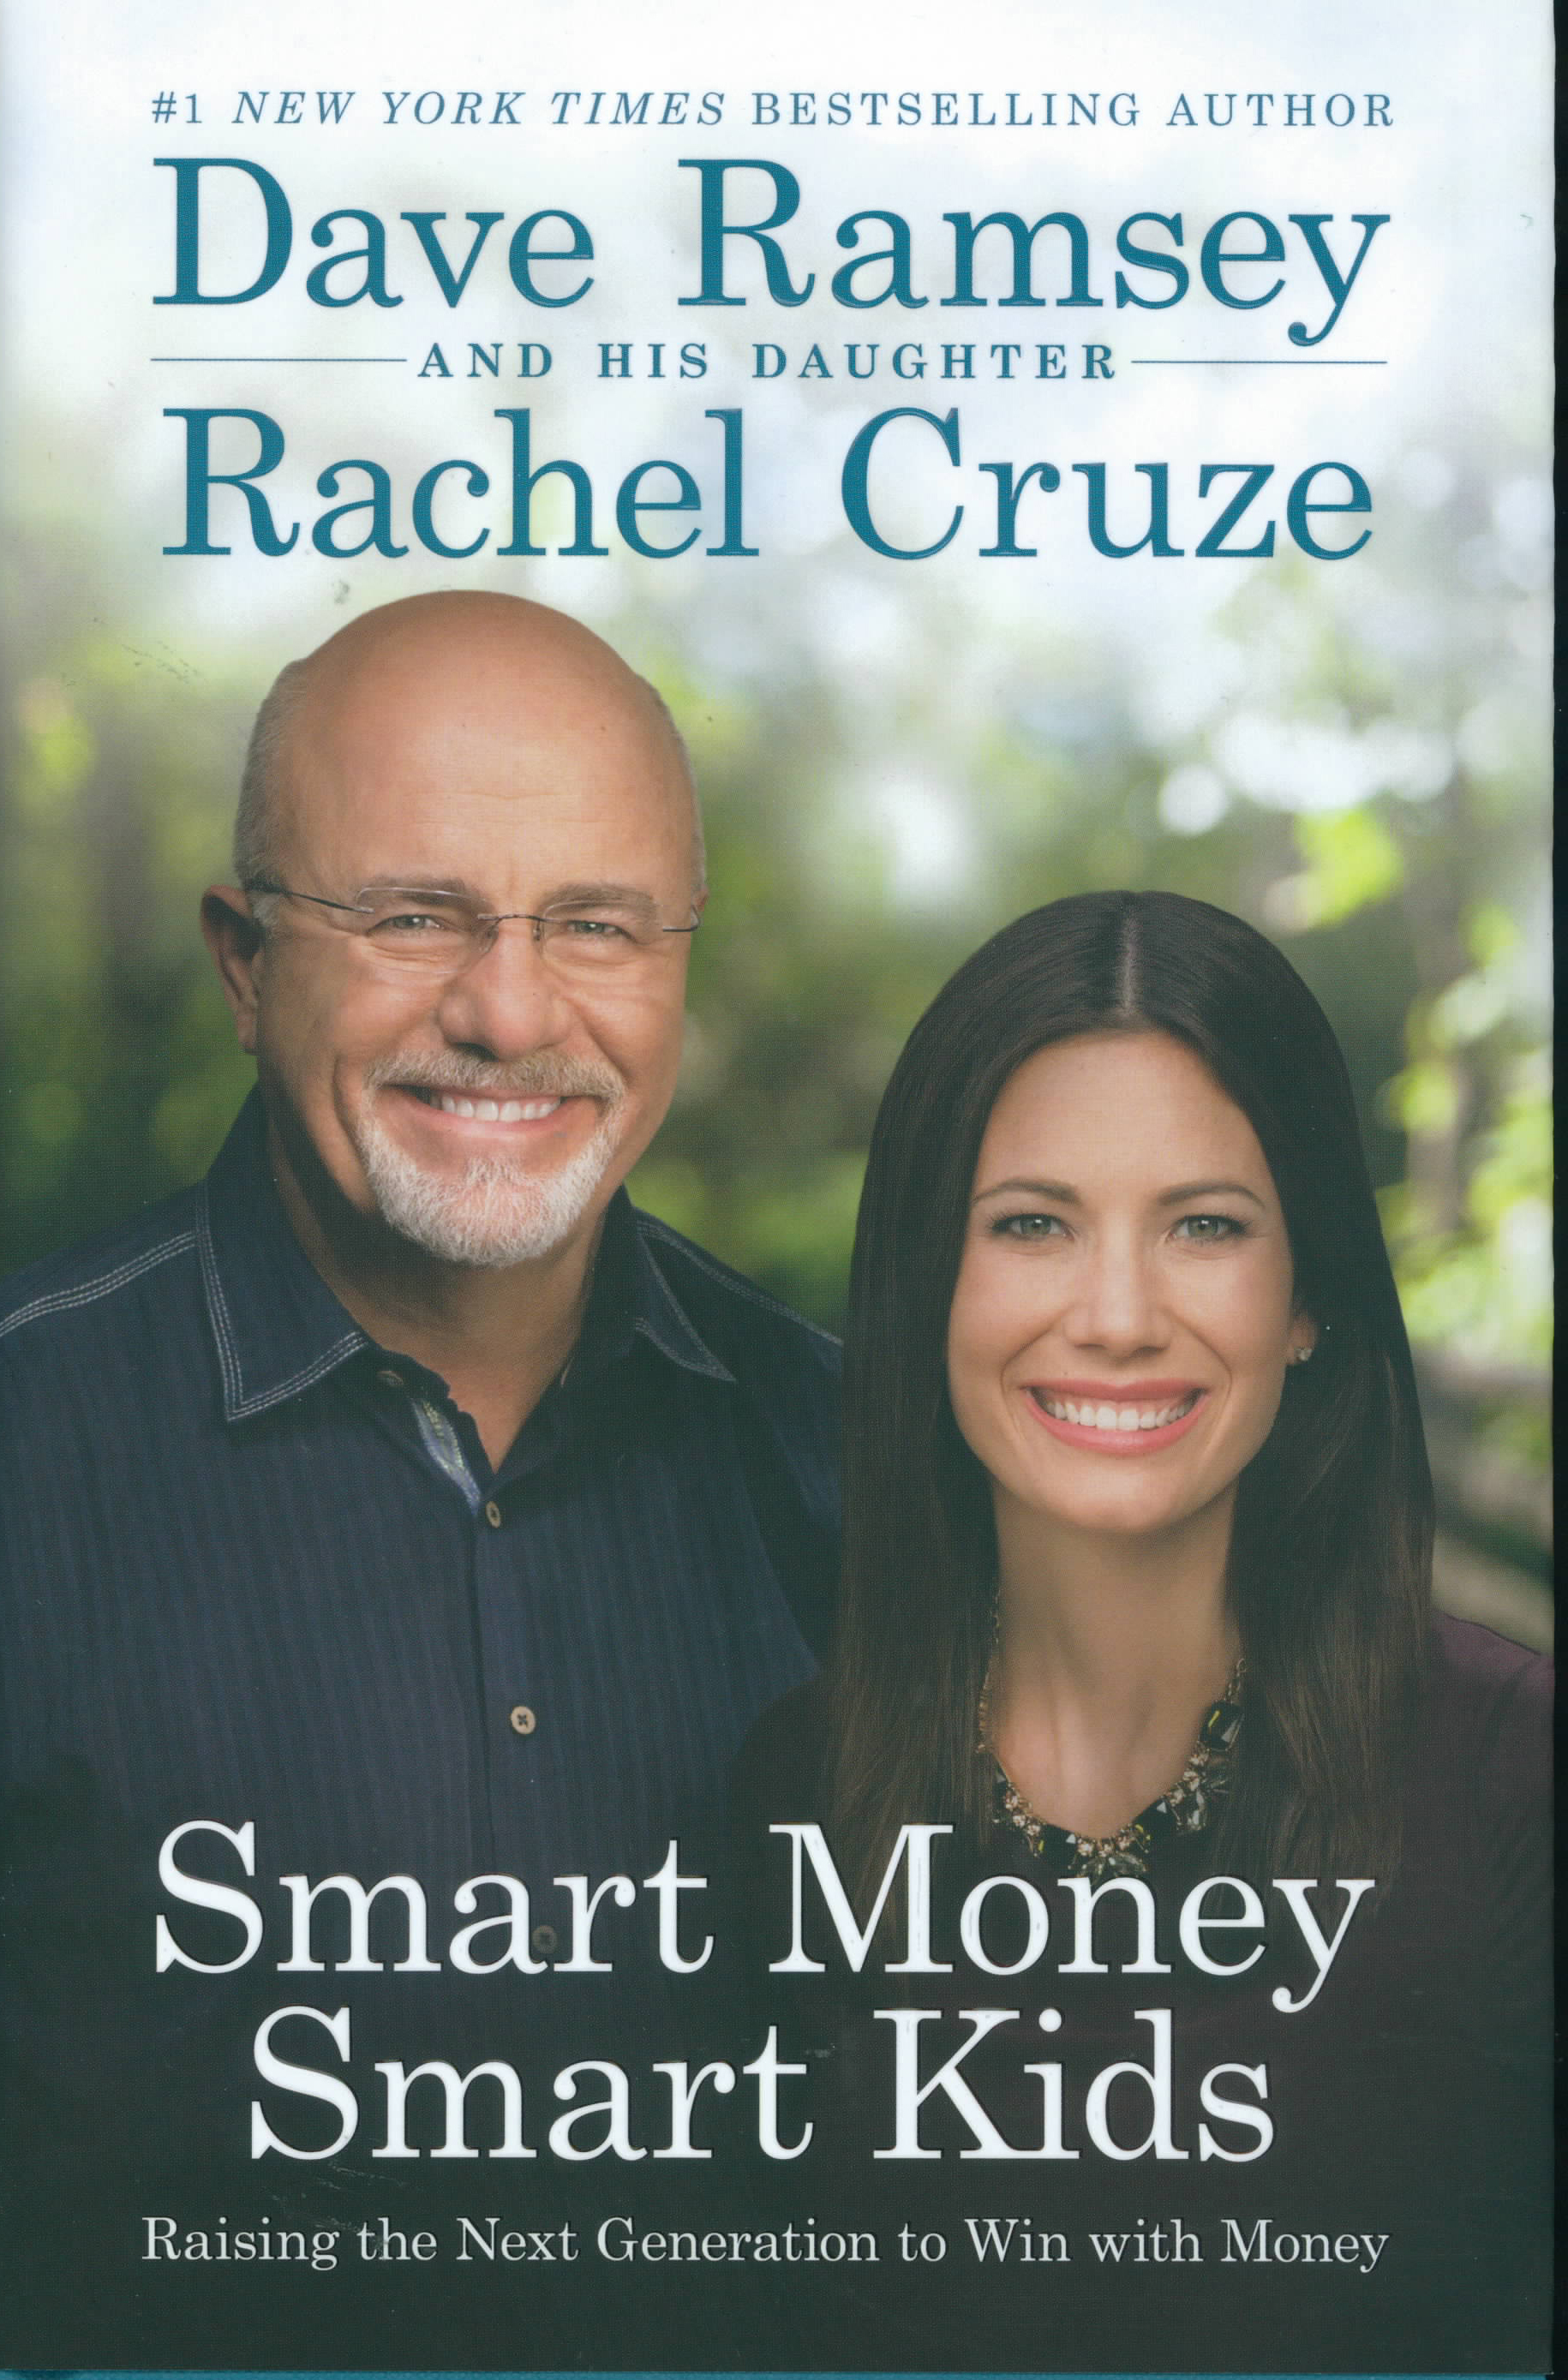 Smart Money Smart Kids by Dave Ramsey 108-9781937077631 how to raise money-smart kids in a debt-filled world.